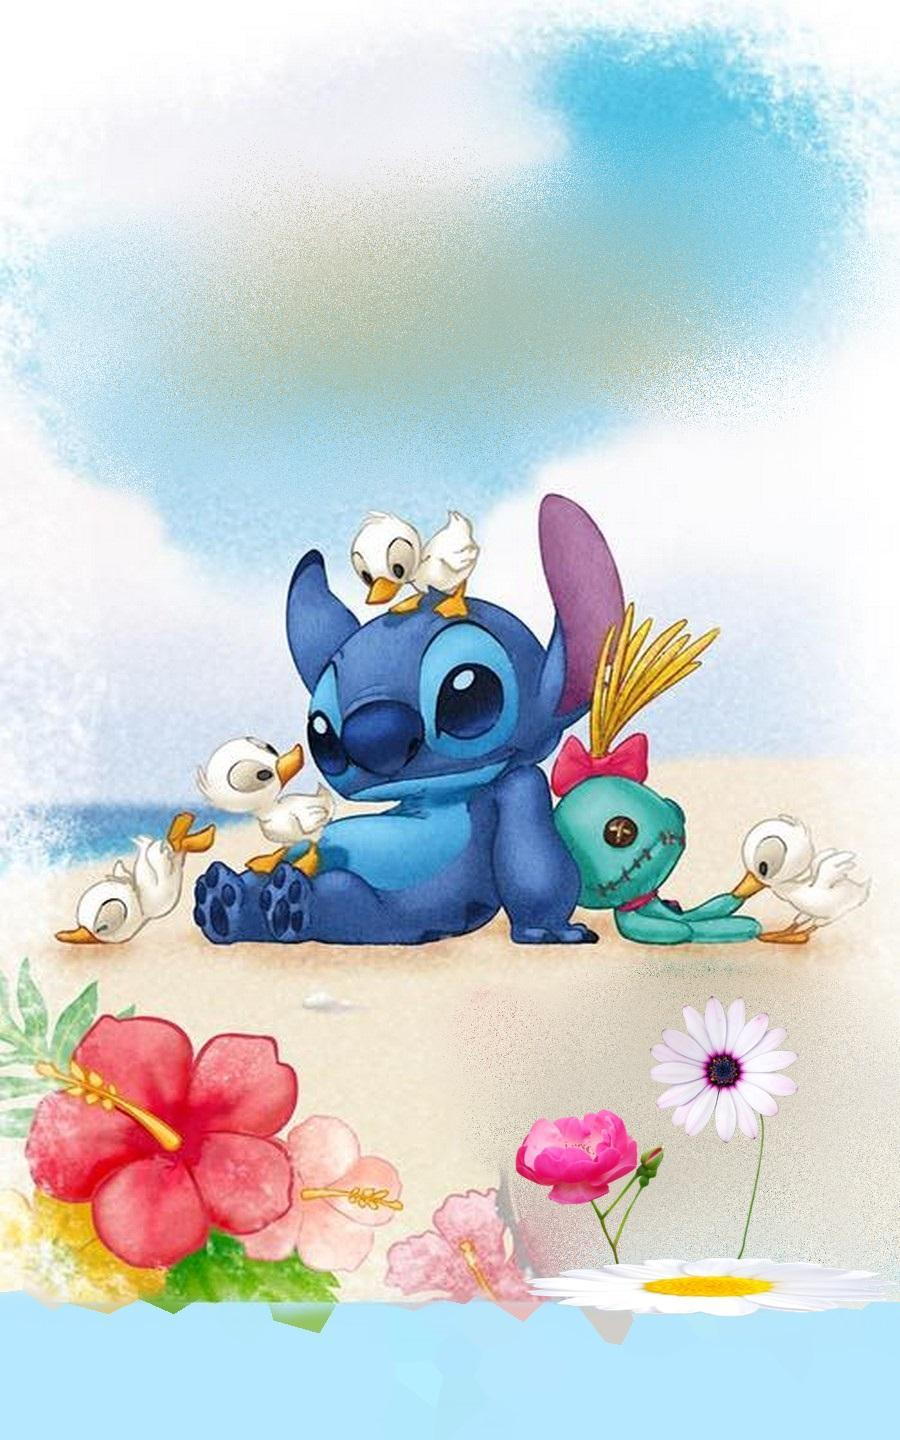 Lilo Stitch Art Wallpaper for Android - APK Download